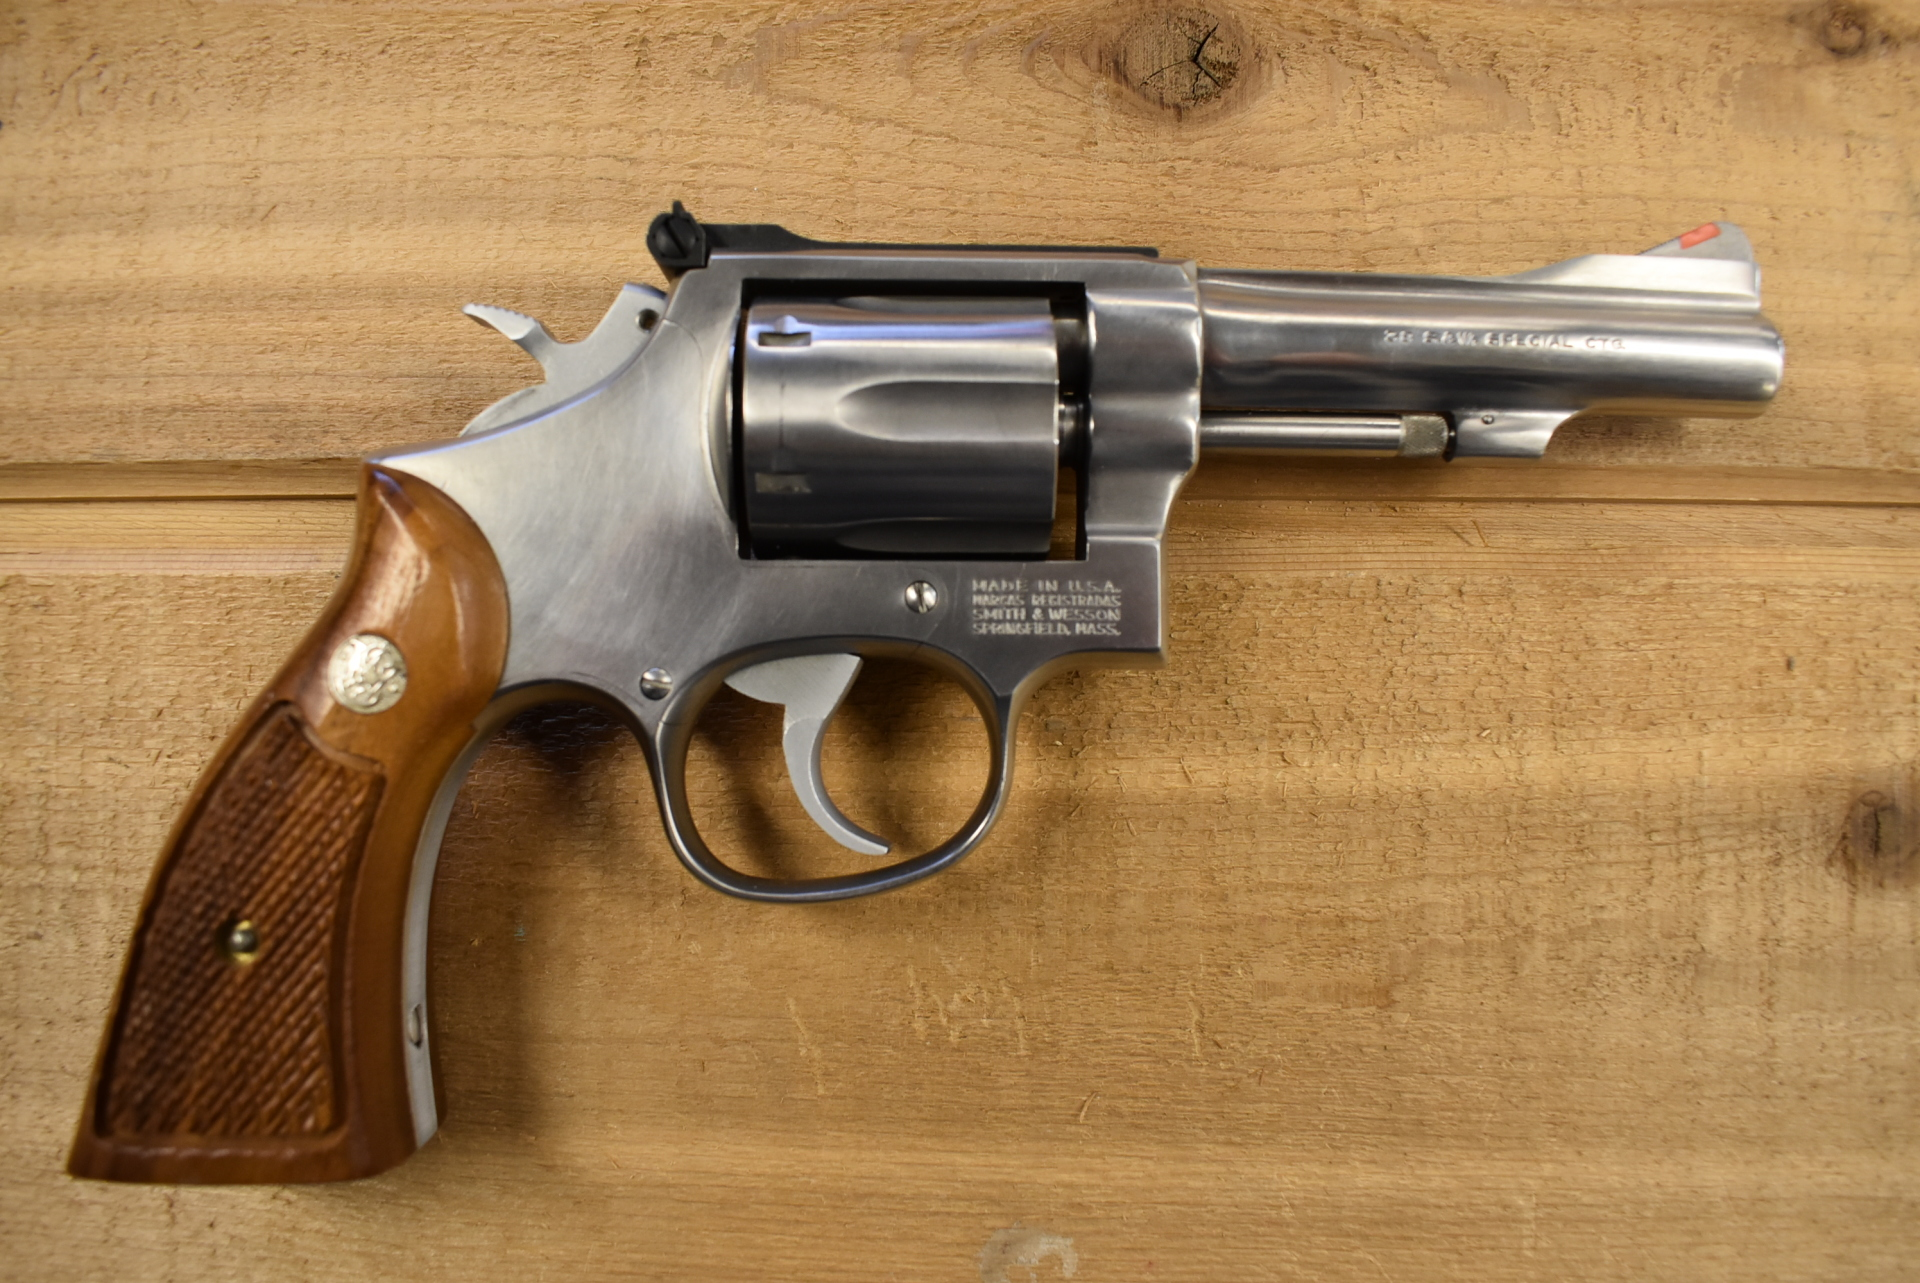 Smith & Wesson 67-1